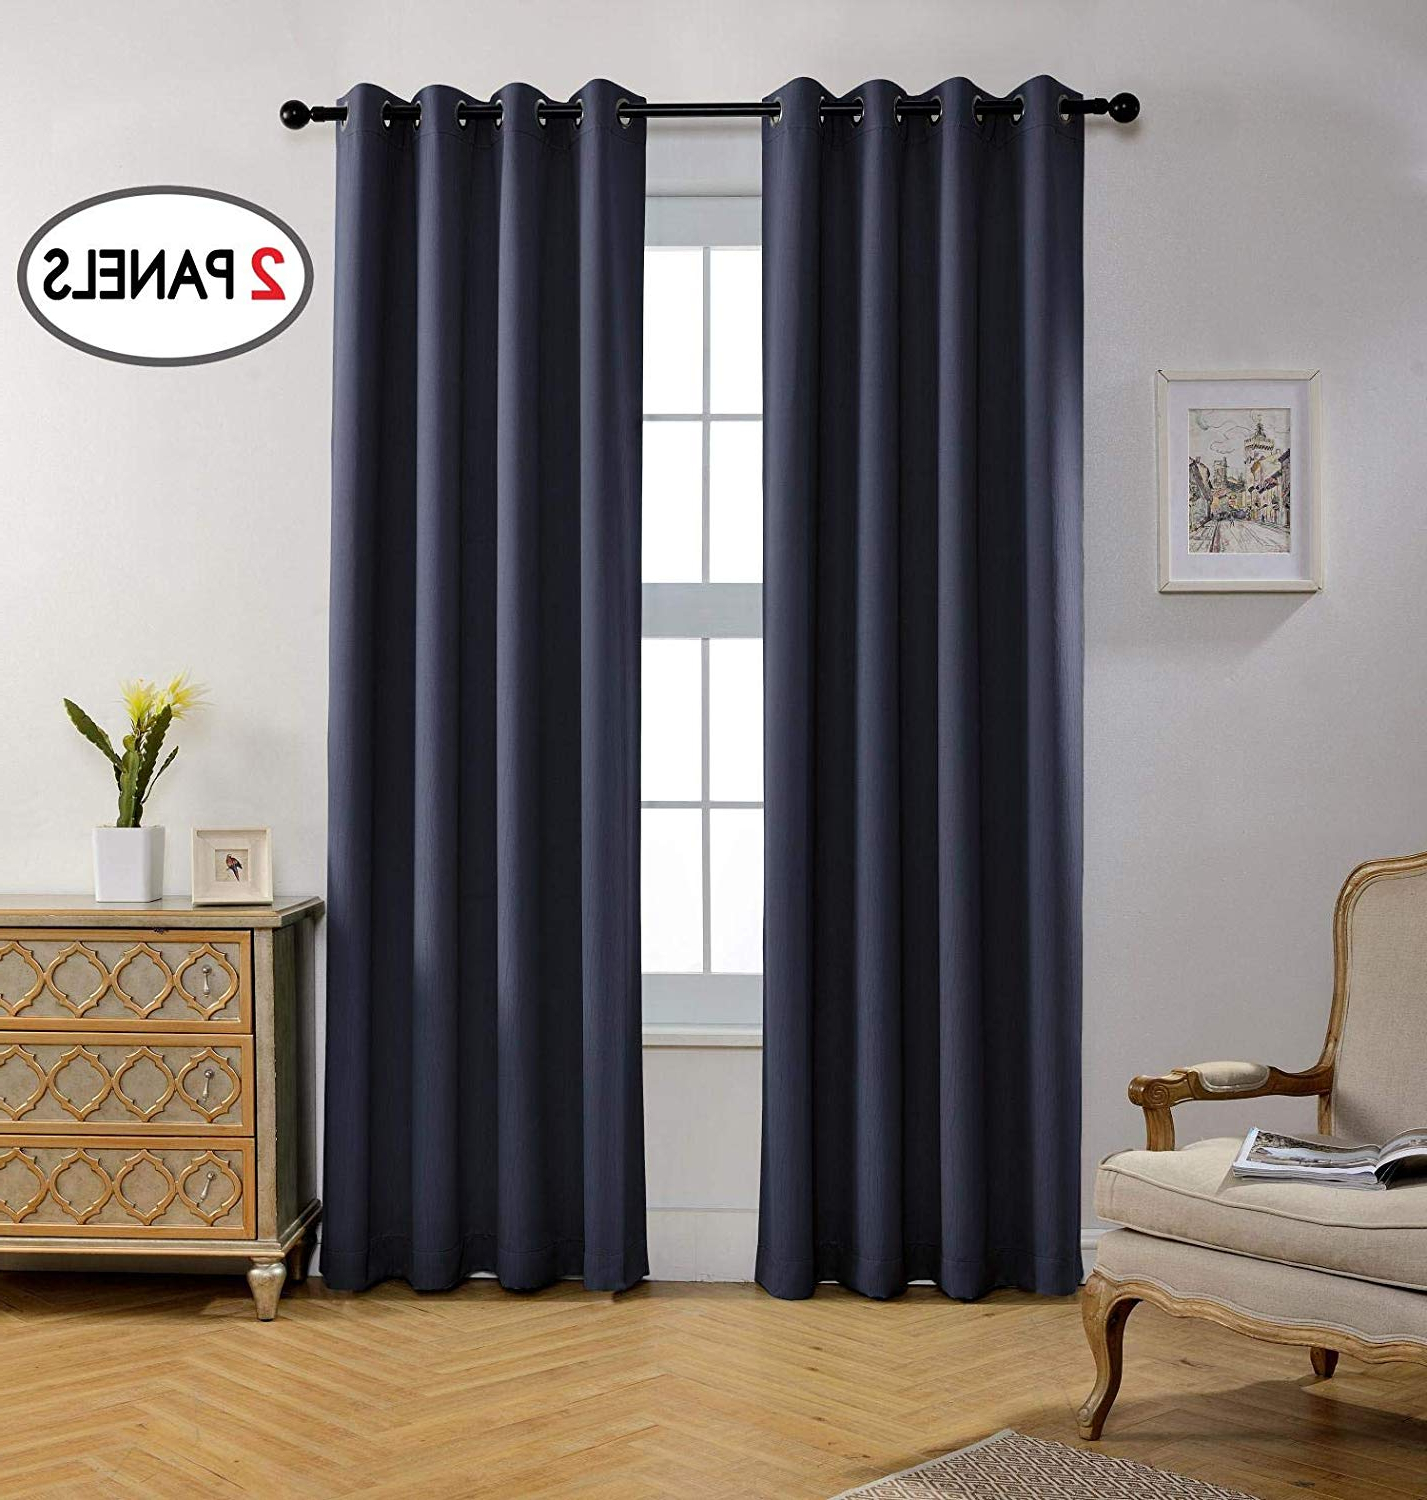 Miuco Blackout Curtains Room Darkening Textured Grommet Window Curtains 2  Panels Office 52X95 Inch Long Navy Blue In Well Liked Porch & Den Lorentz Silver 24 Inch Tier Pairs (Gallery 20 of 20)